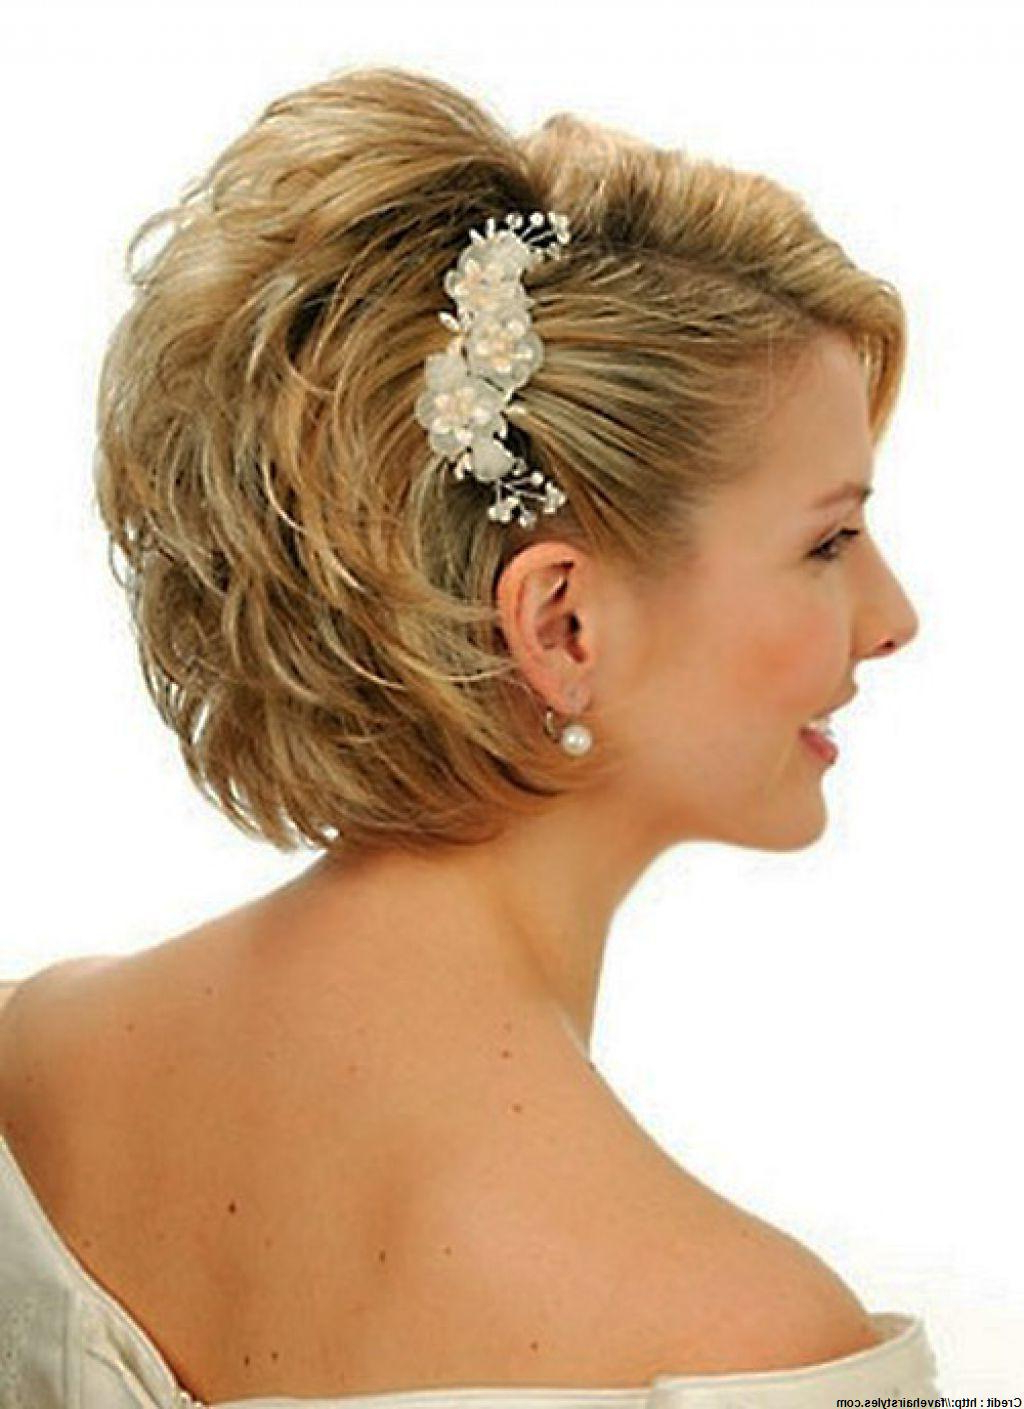 Tips To Get Elegant Wedding Hairstyles For Short Hair – Fast Think Site! Inside Bridal Hairstyles Short Hair (View 7 of 25)